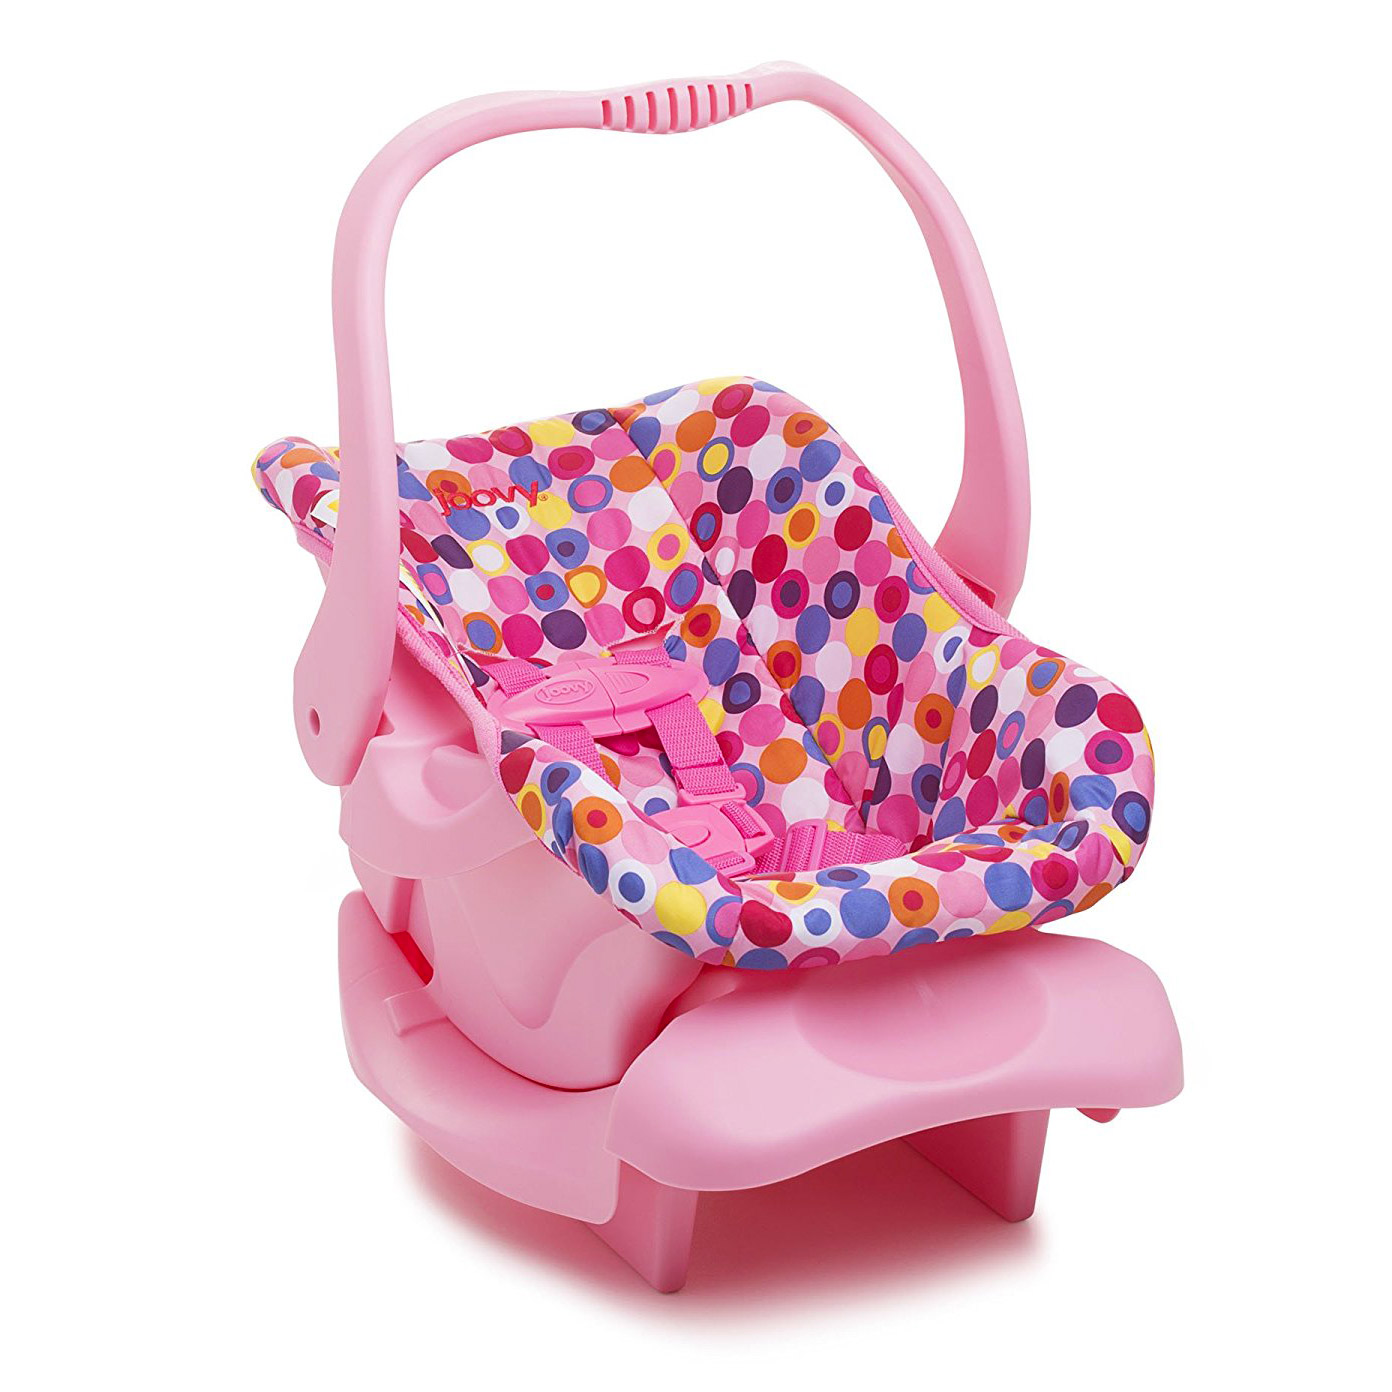 Joovy Toy Car Seat Baby Doll Accessory, Pink